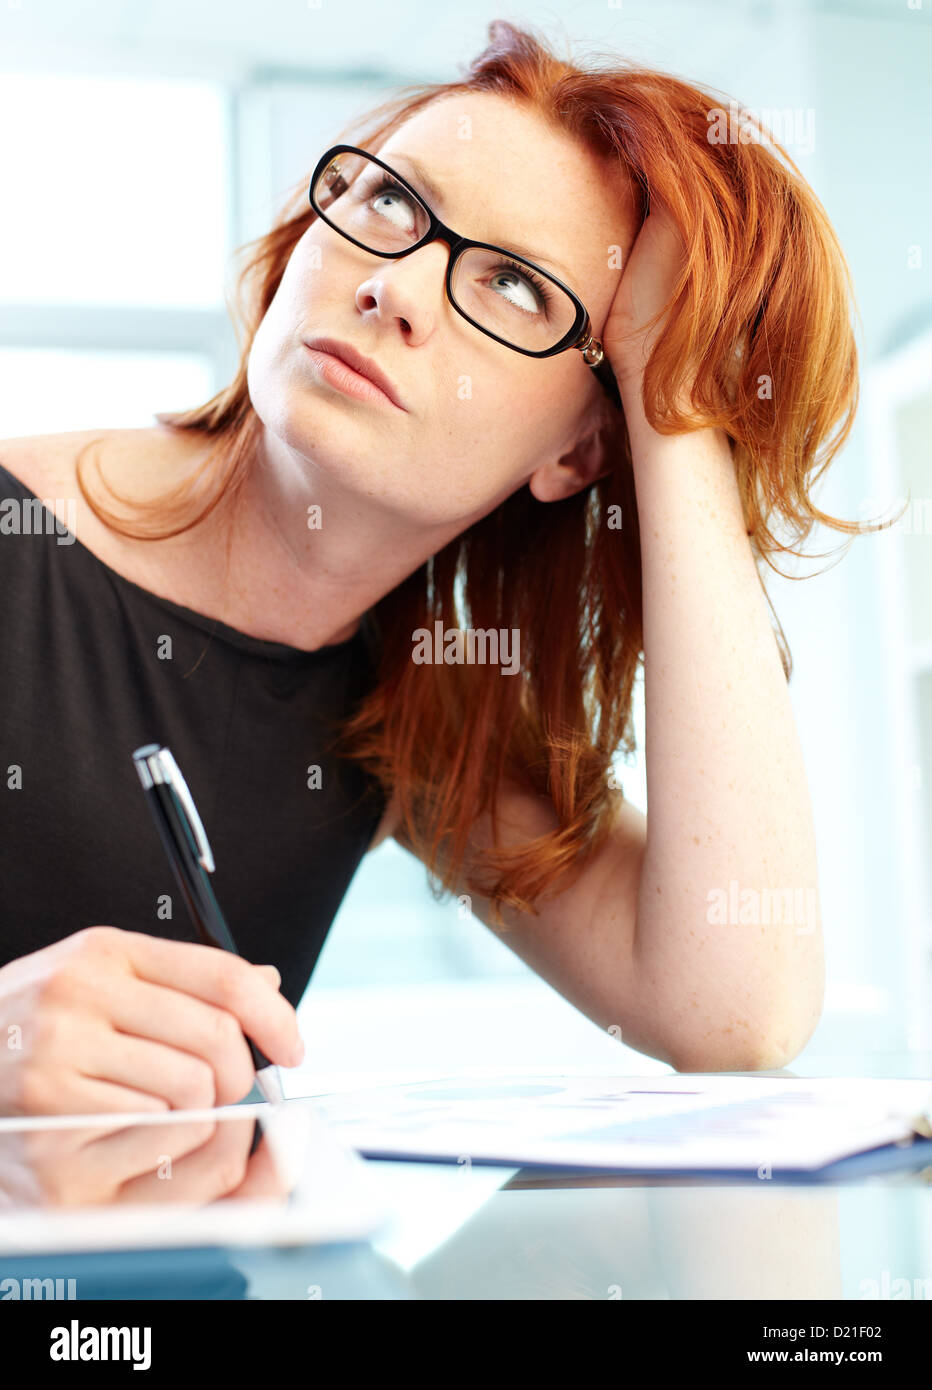 Vertical shot of a woman being deep in thought - Stock Image